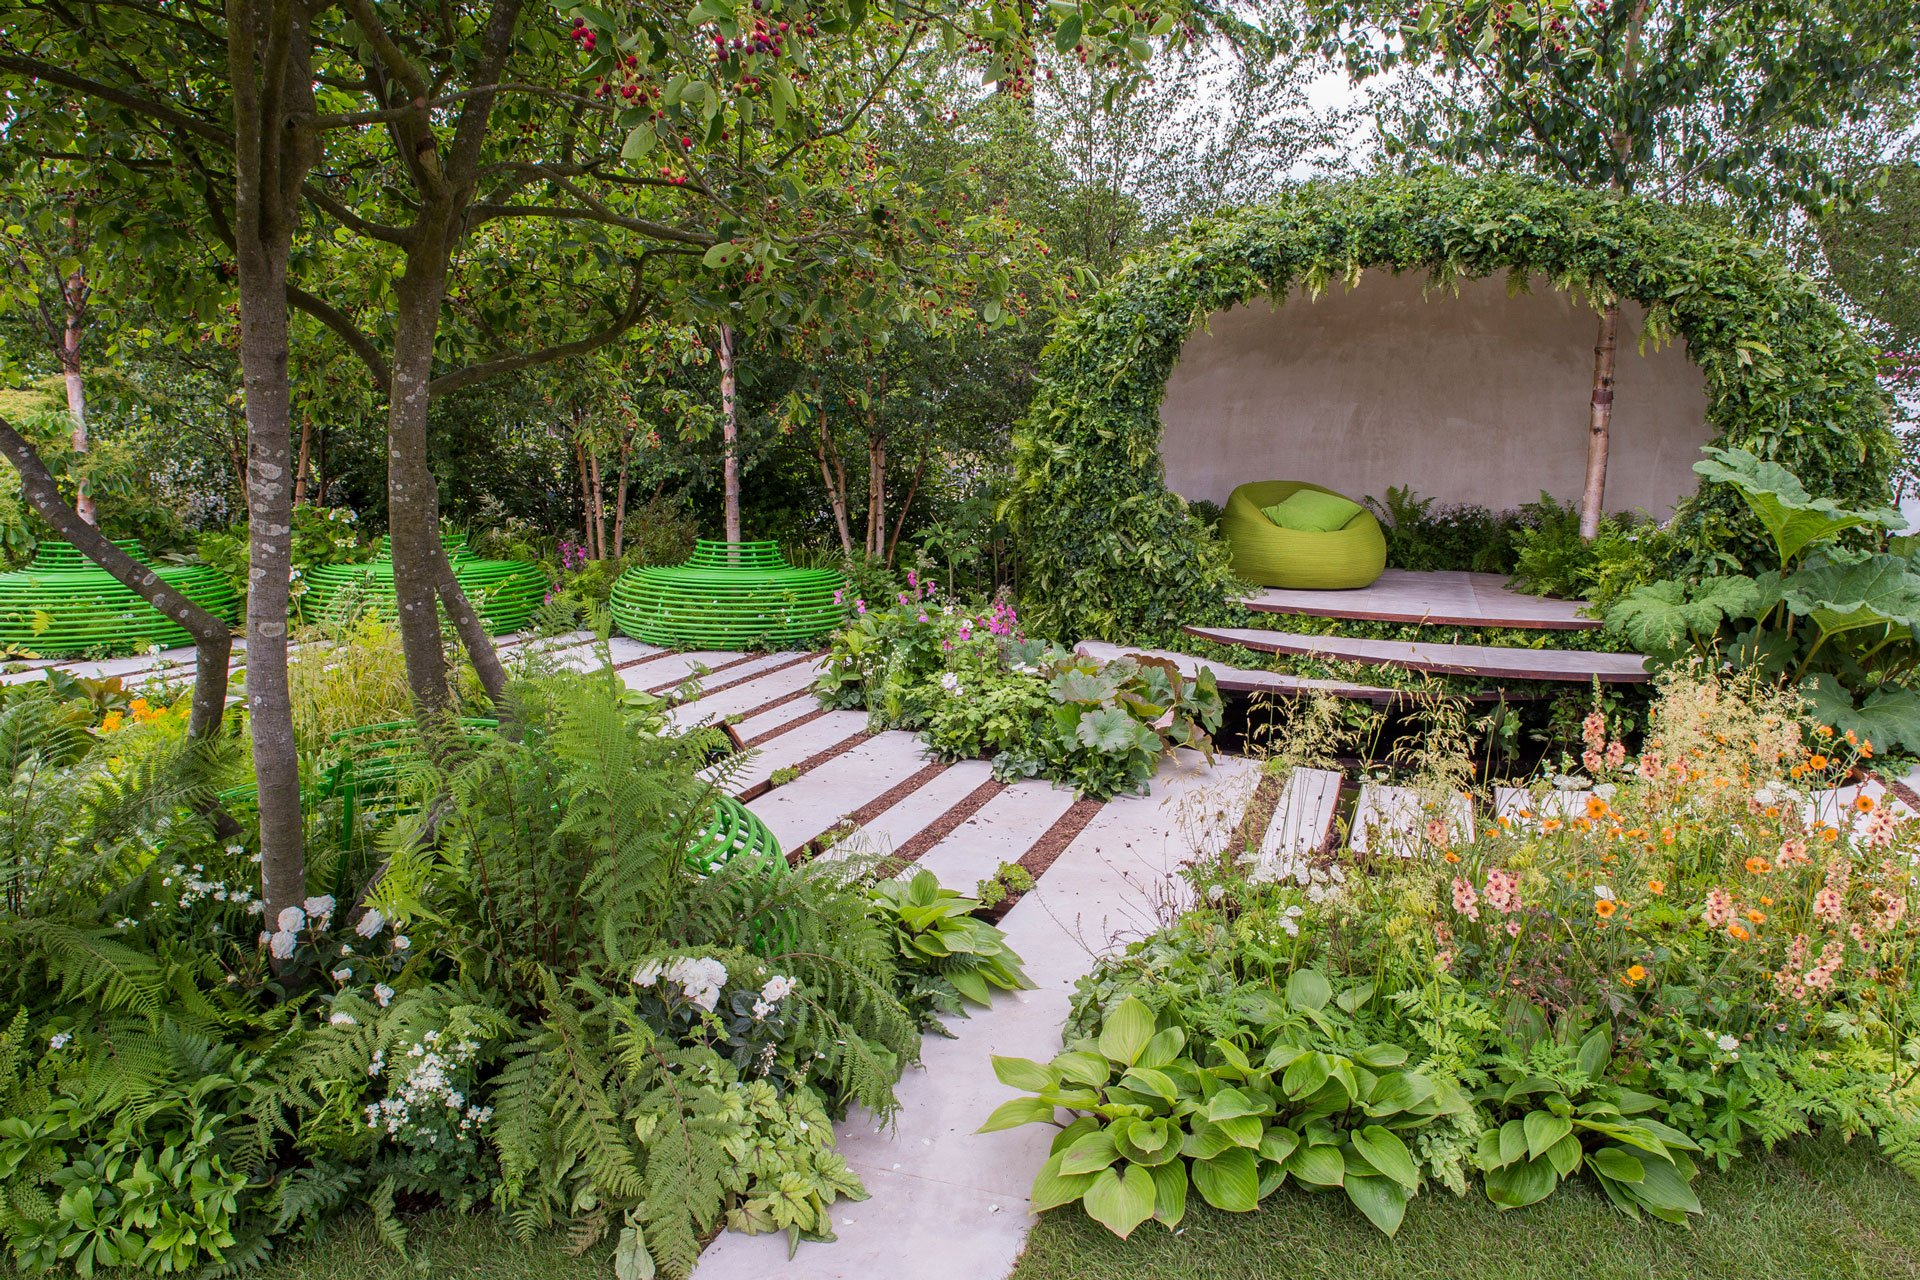 A natural garden building, wildlife planting, urban pond, contemporary tree seats at RHS Hampton Court 2015; Macmillan Garden